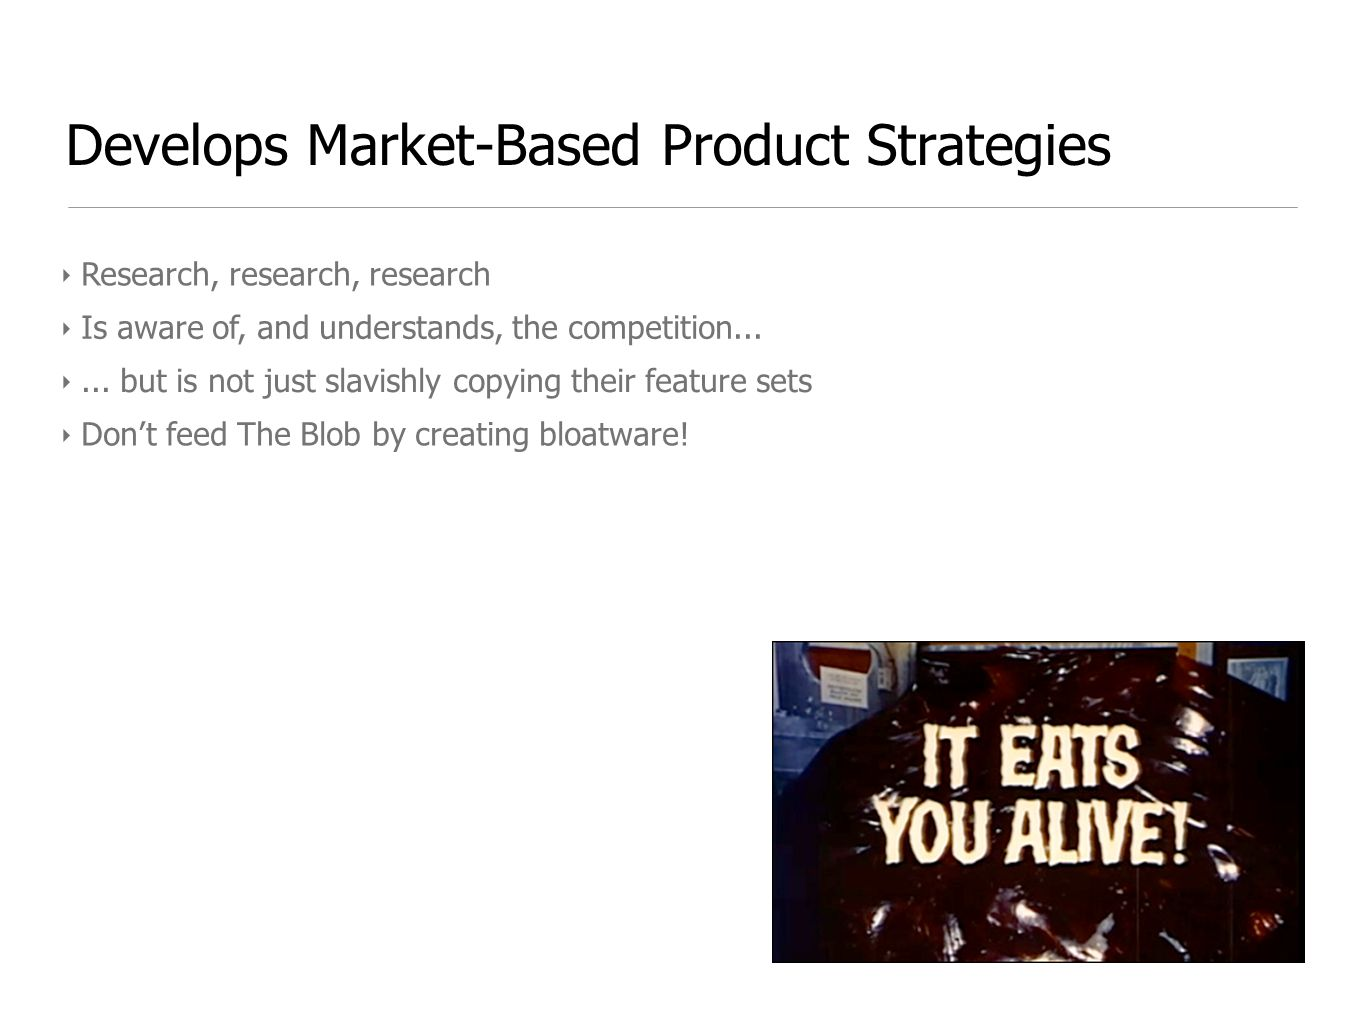 Develops Market-Based Product Strategies